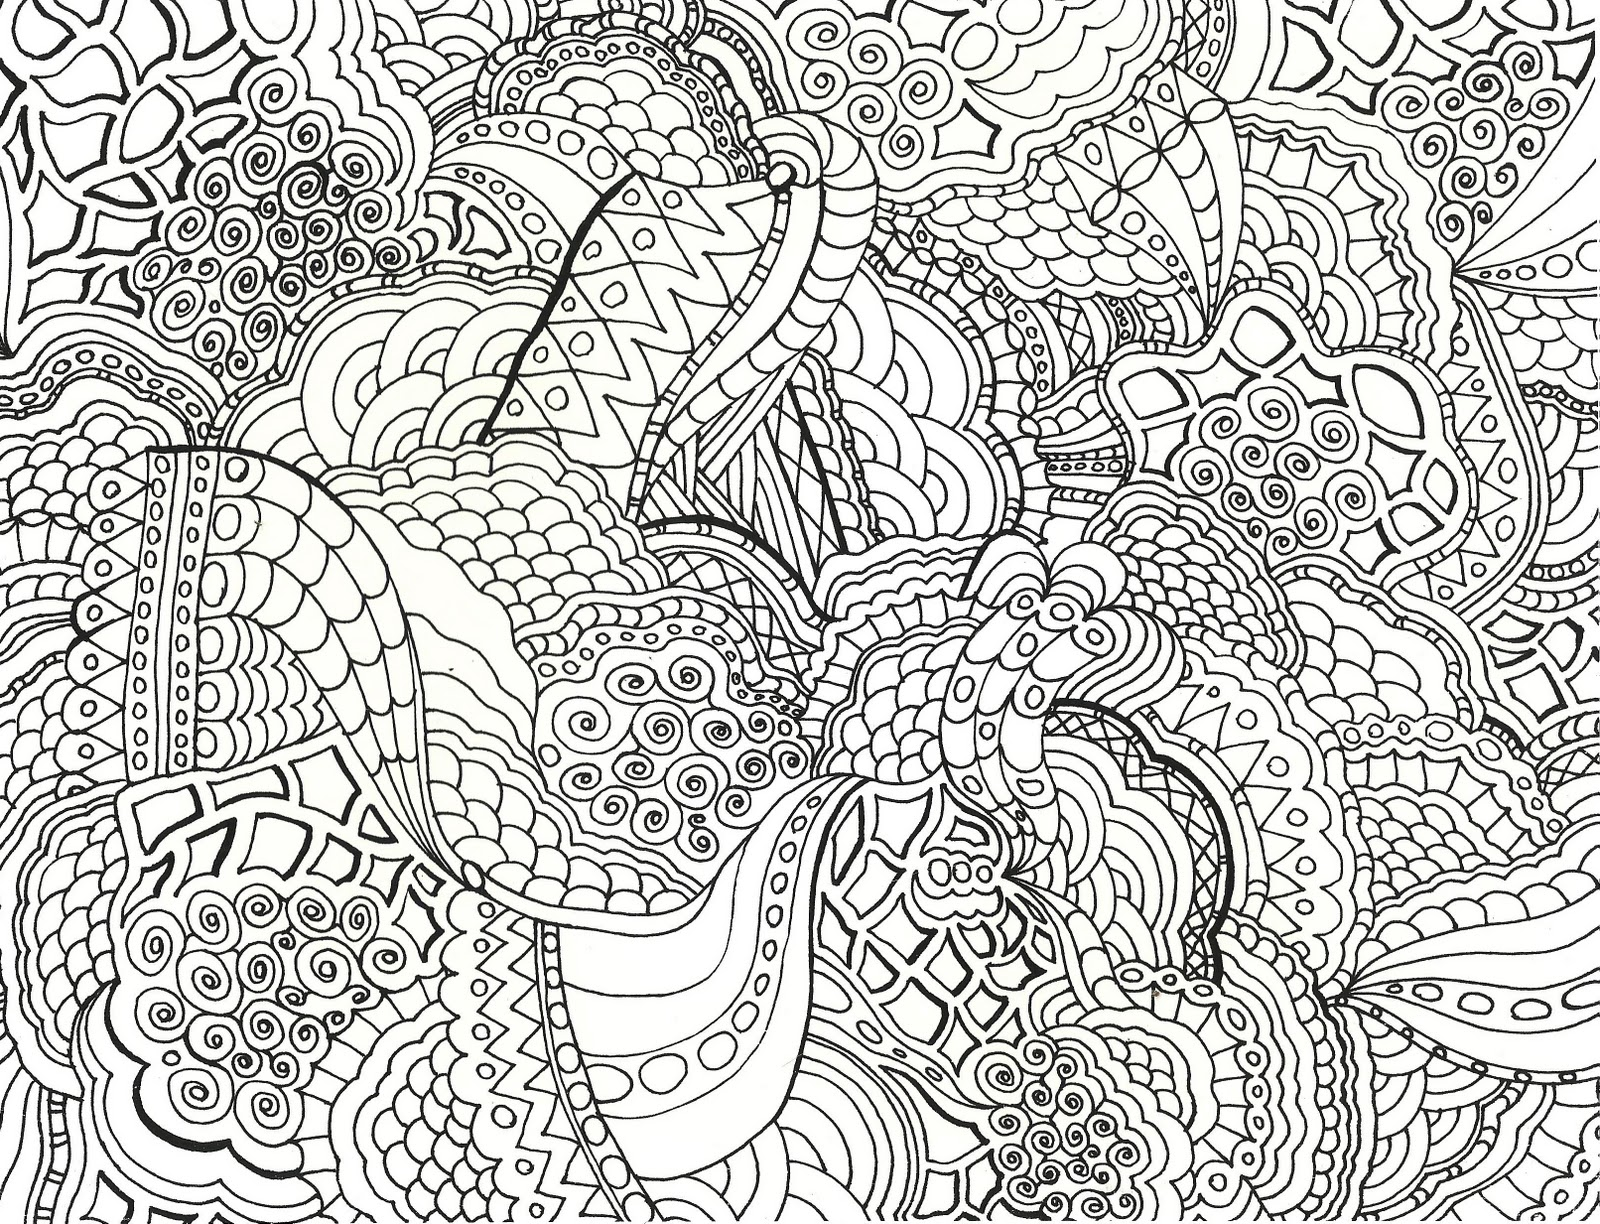 Detailed Coloring Pages For Adults Awesome Detailed Coloring Pages To Download And Print For Free